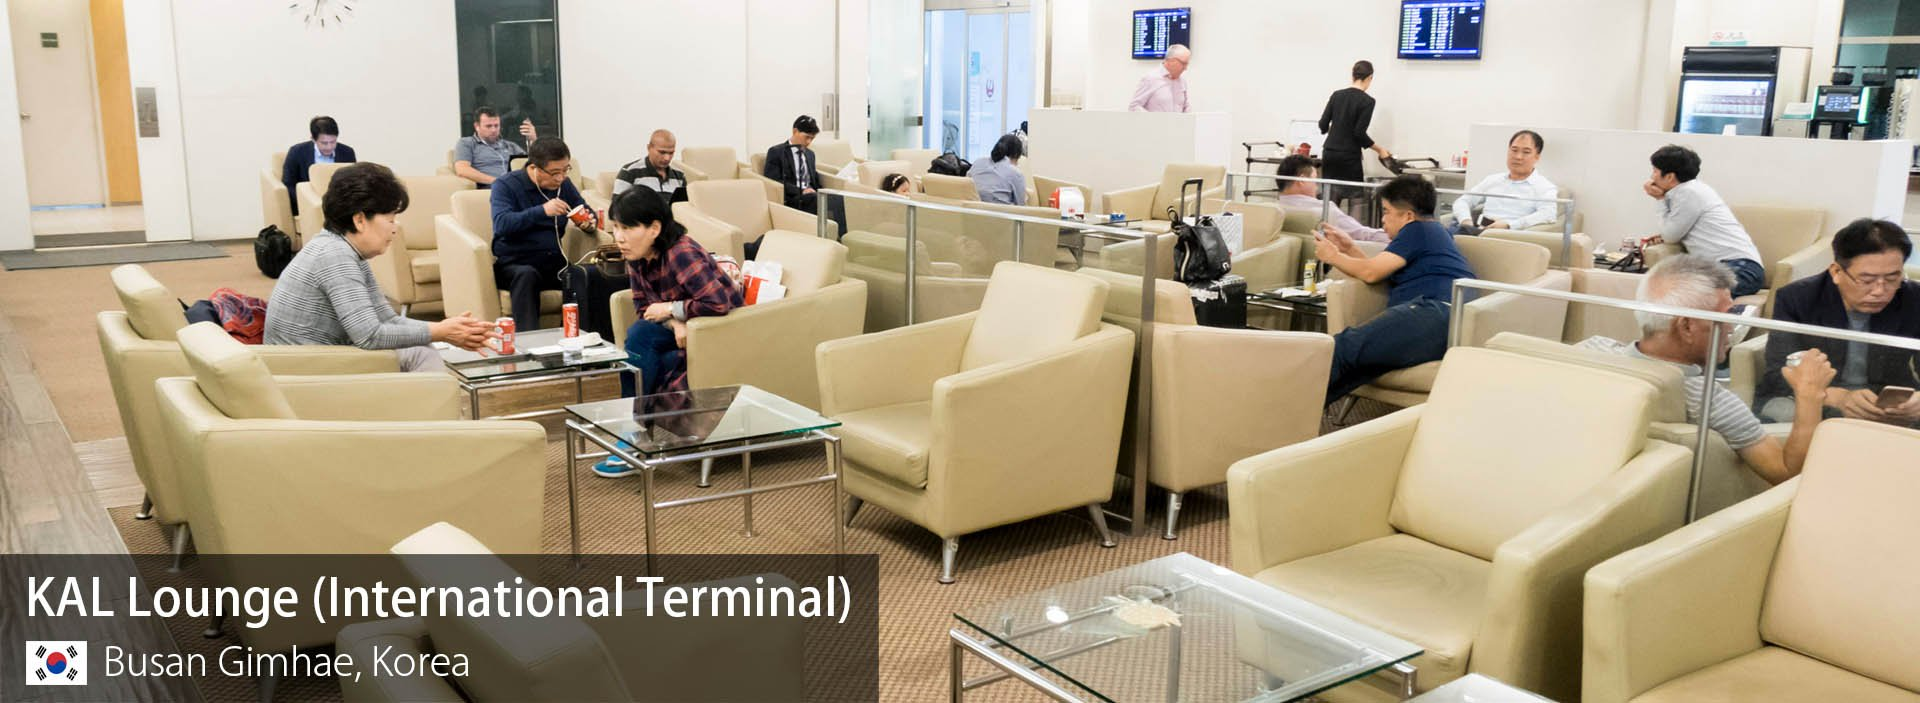 Lounge Review: KAL Lounge (International Terminal) at Busan Gimhae